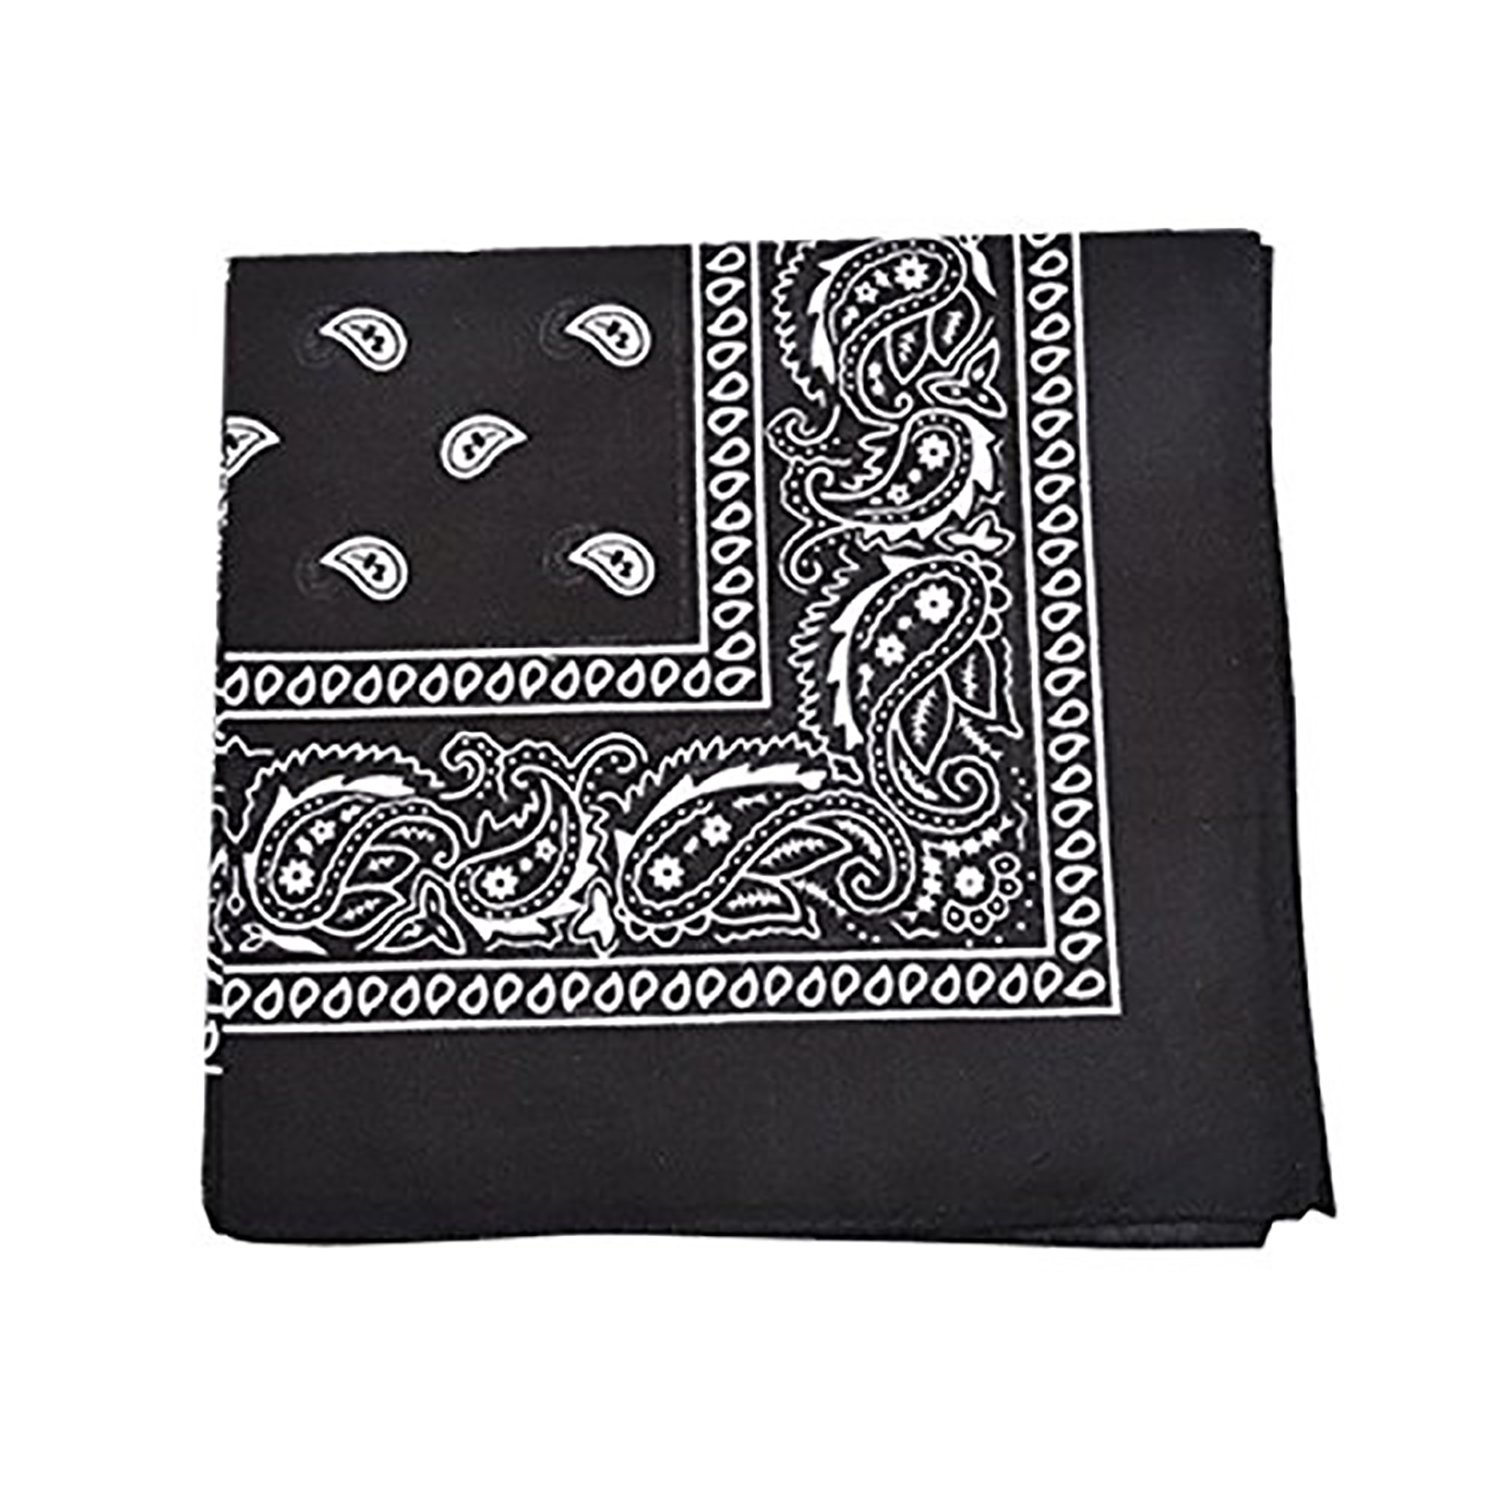 Qraftsy 100% Cotton Versatile Bandana - Paisley and Solid Colors Available - 12 Pack